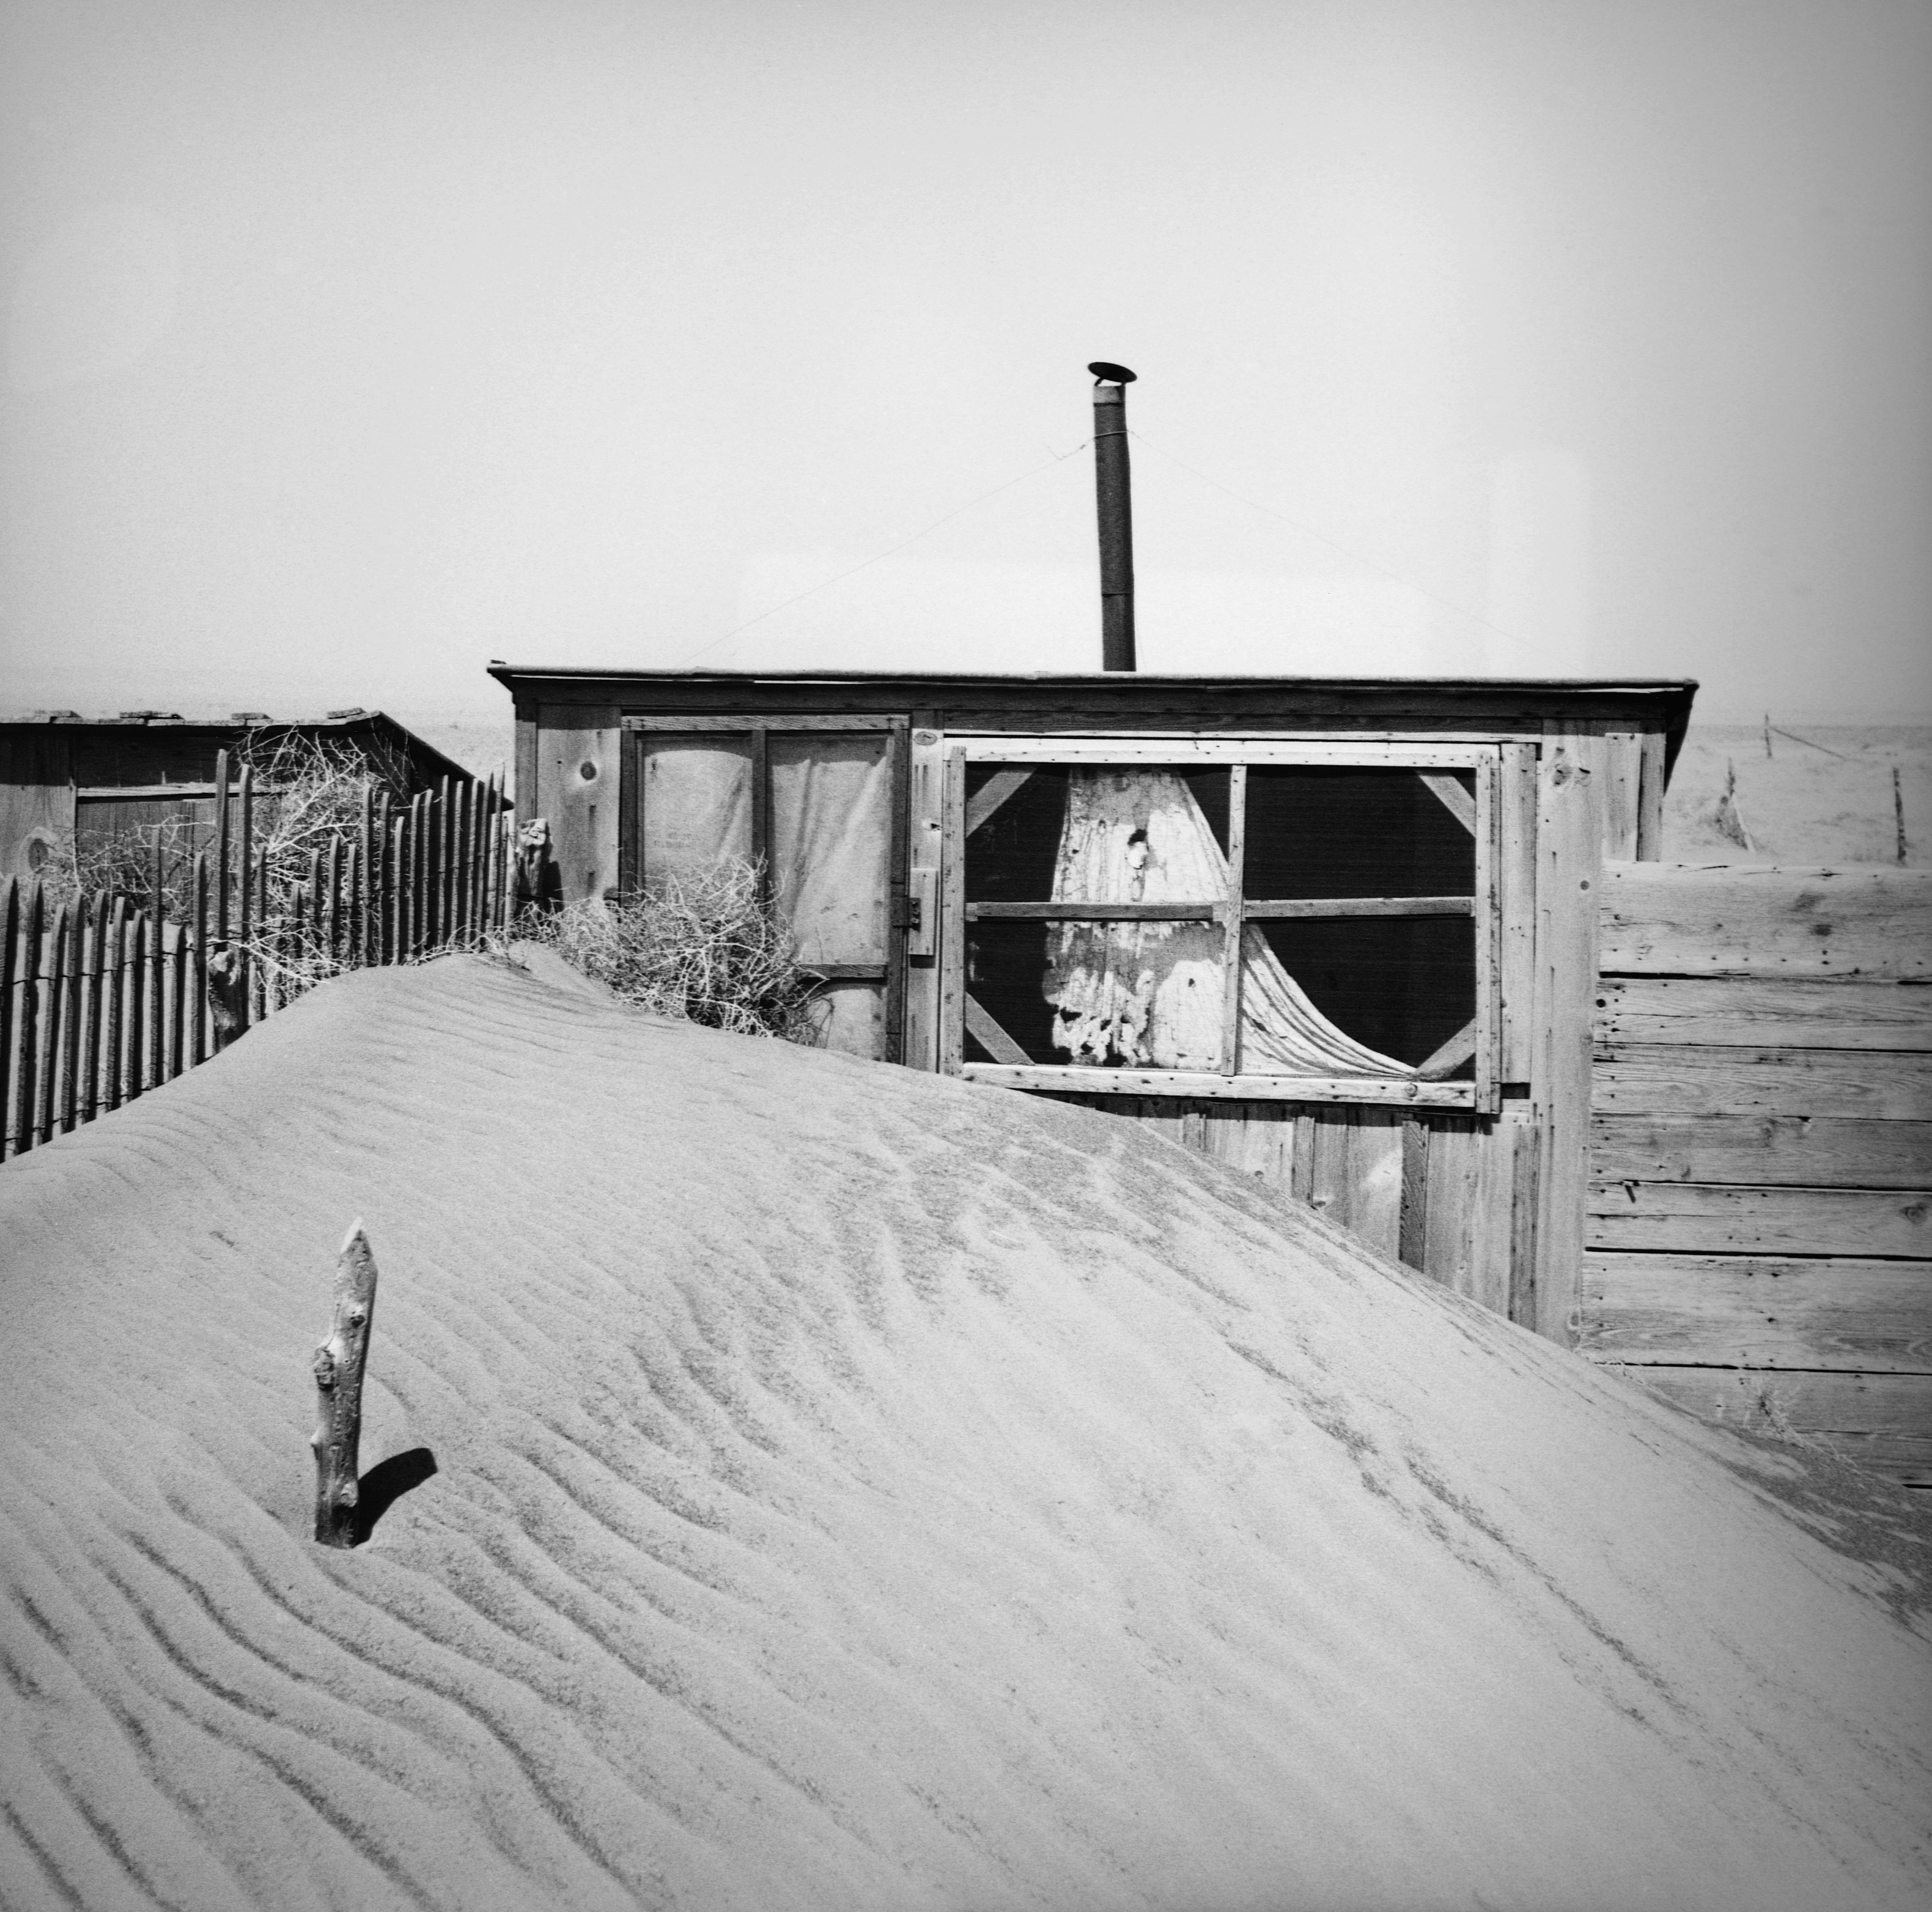 The Dust Bowl Pictures  Dust Bowl  HISTORYcom